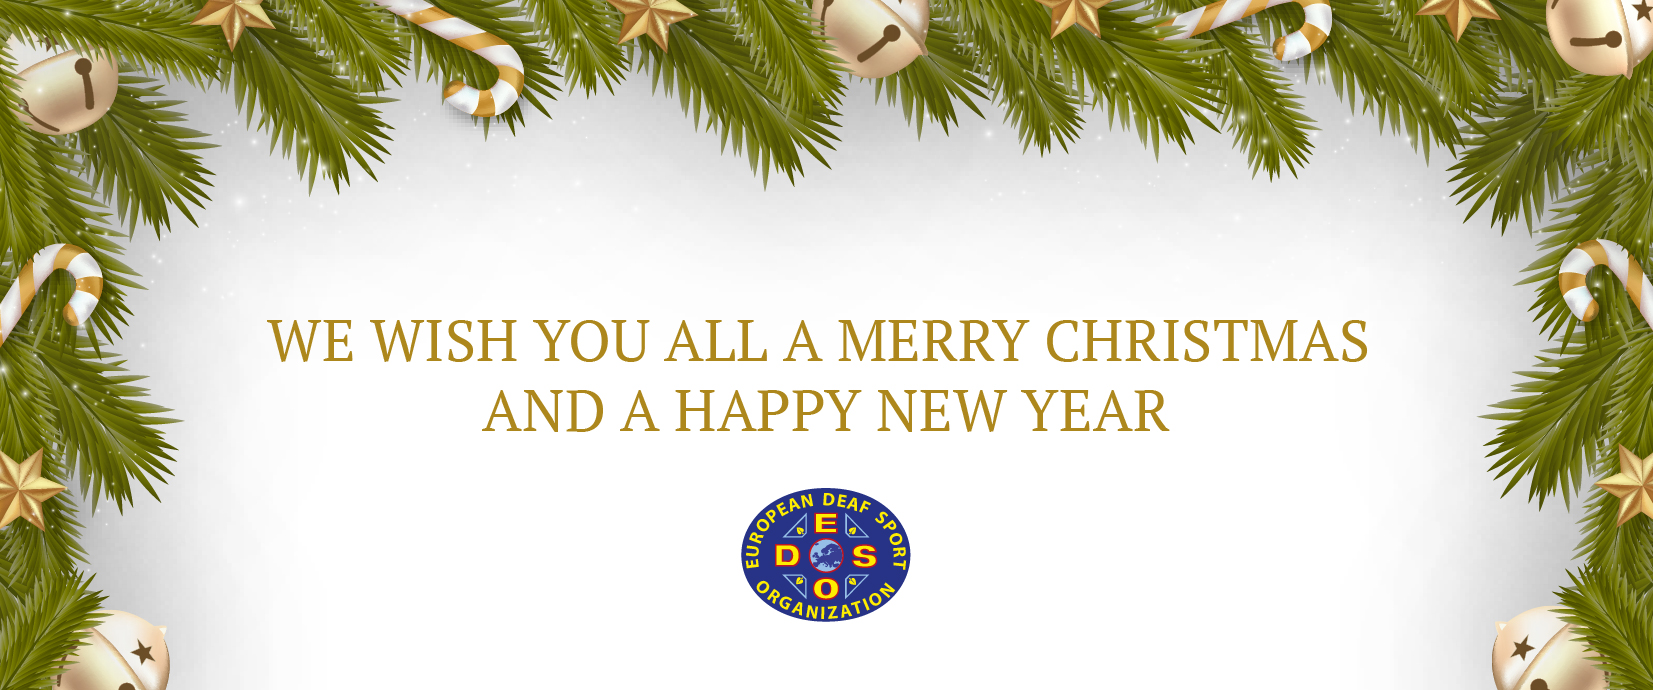 European Deaf Sports Organisation   Merry Christmas and Happy New ...